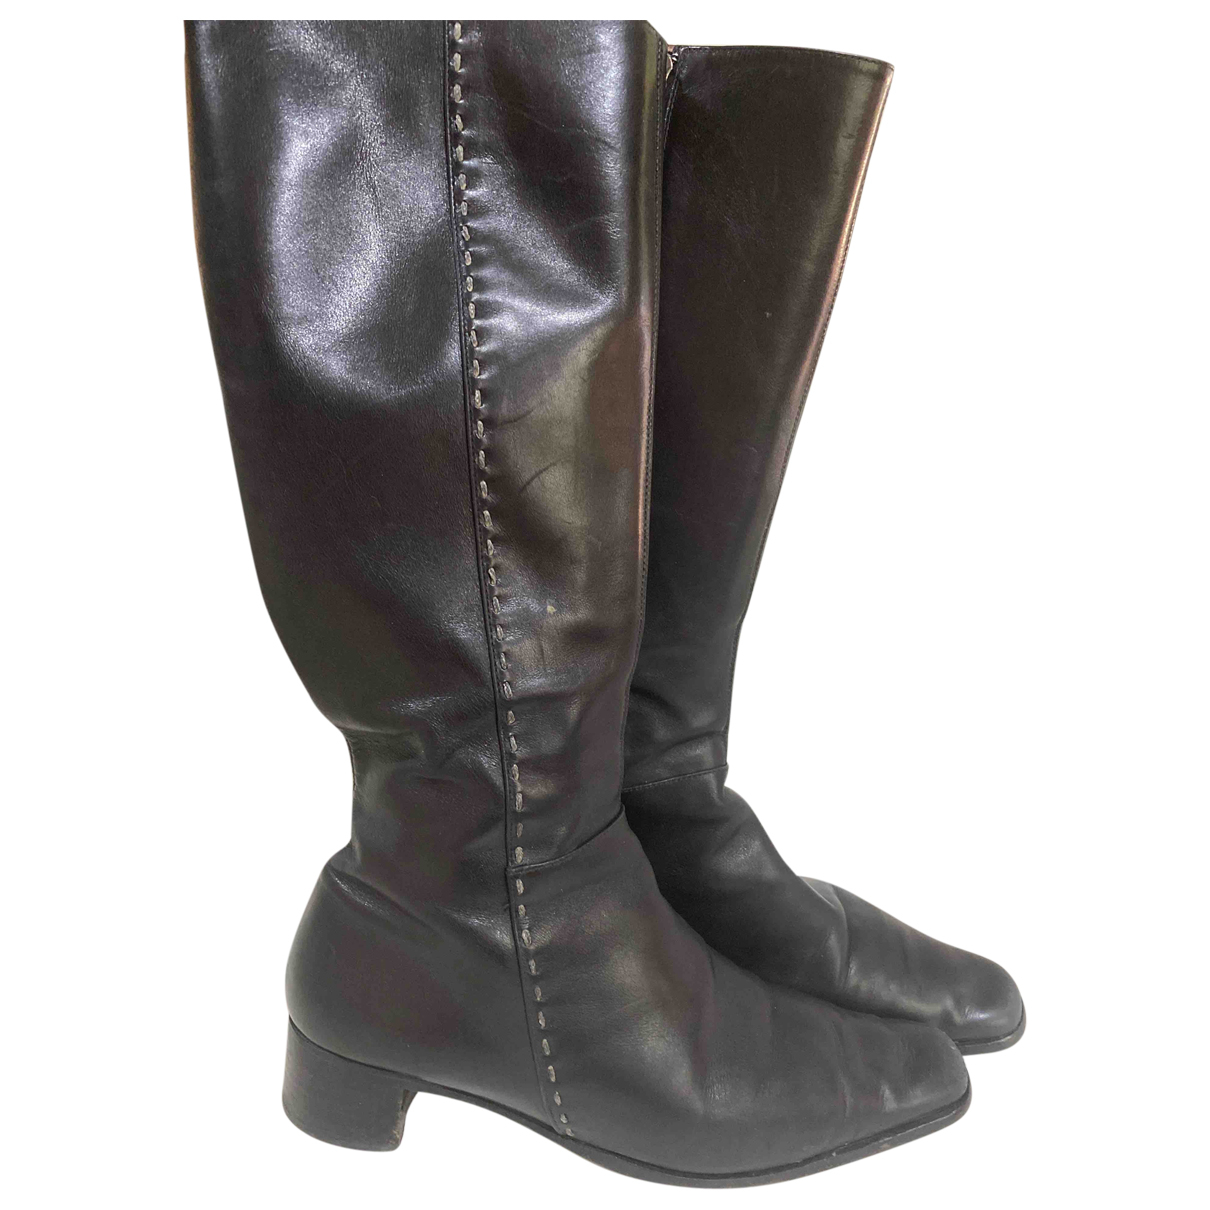 Fratelli Rossetti N Black Leather Boots for Women 38 IT